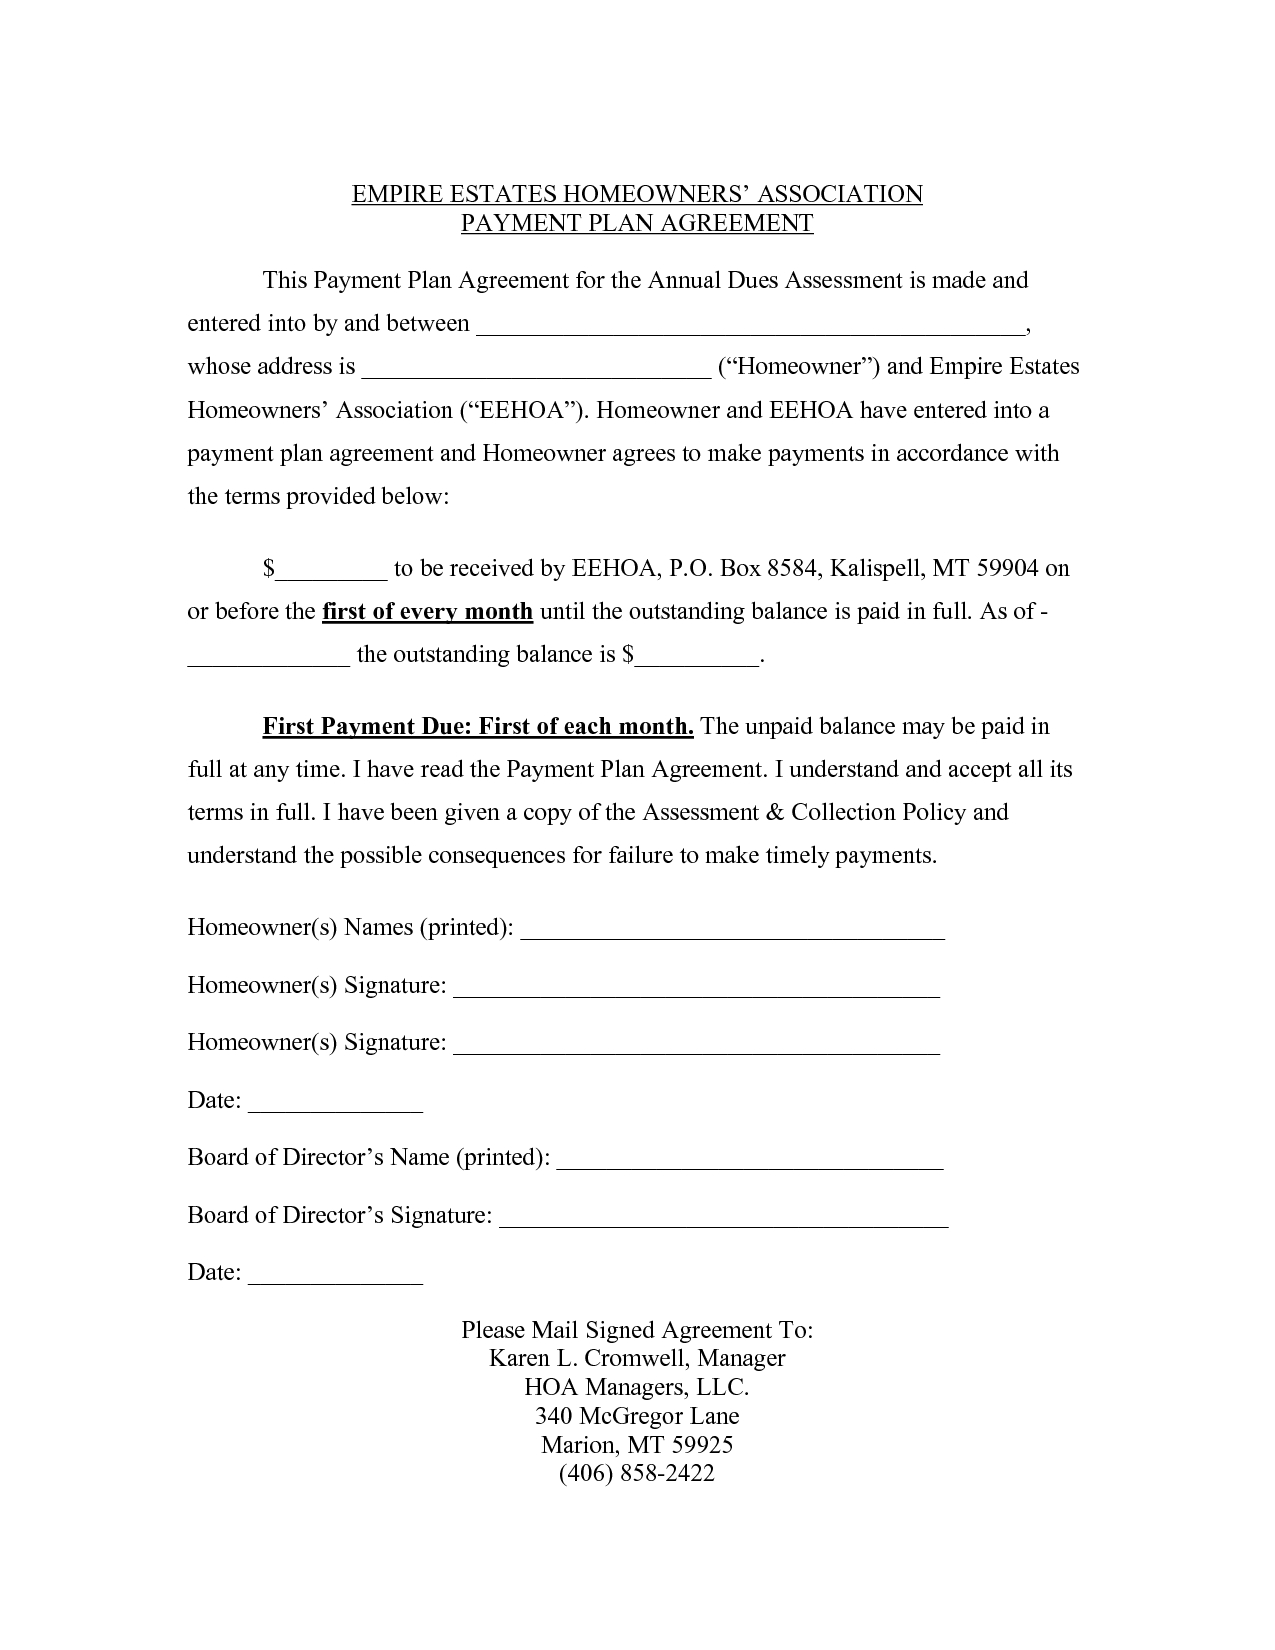 Loan Agreement Template Microsoft Word Templates Qpfwvy  Free Inside How To Make A Business Contract Template